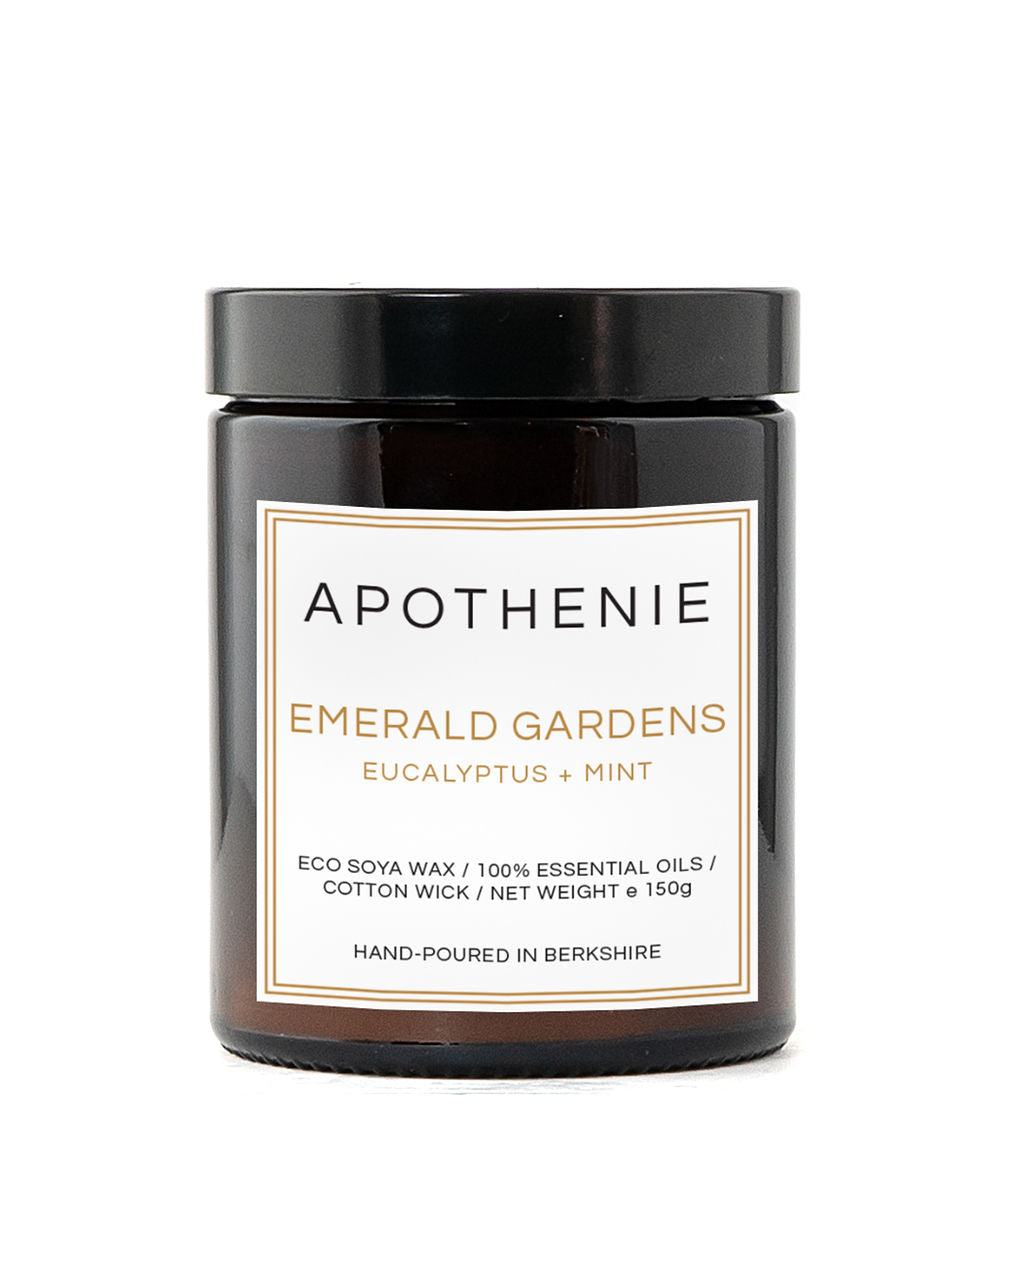 26.00 Emerald Gardens freeshipping - Apothenie UK